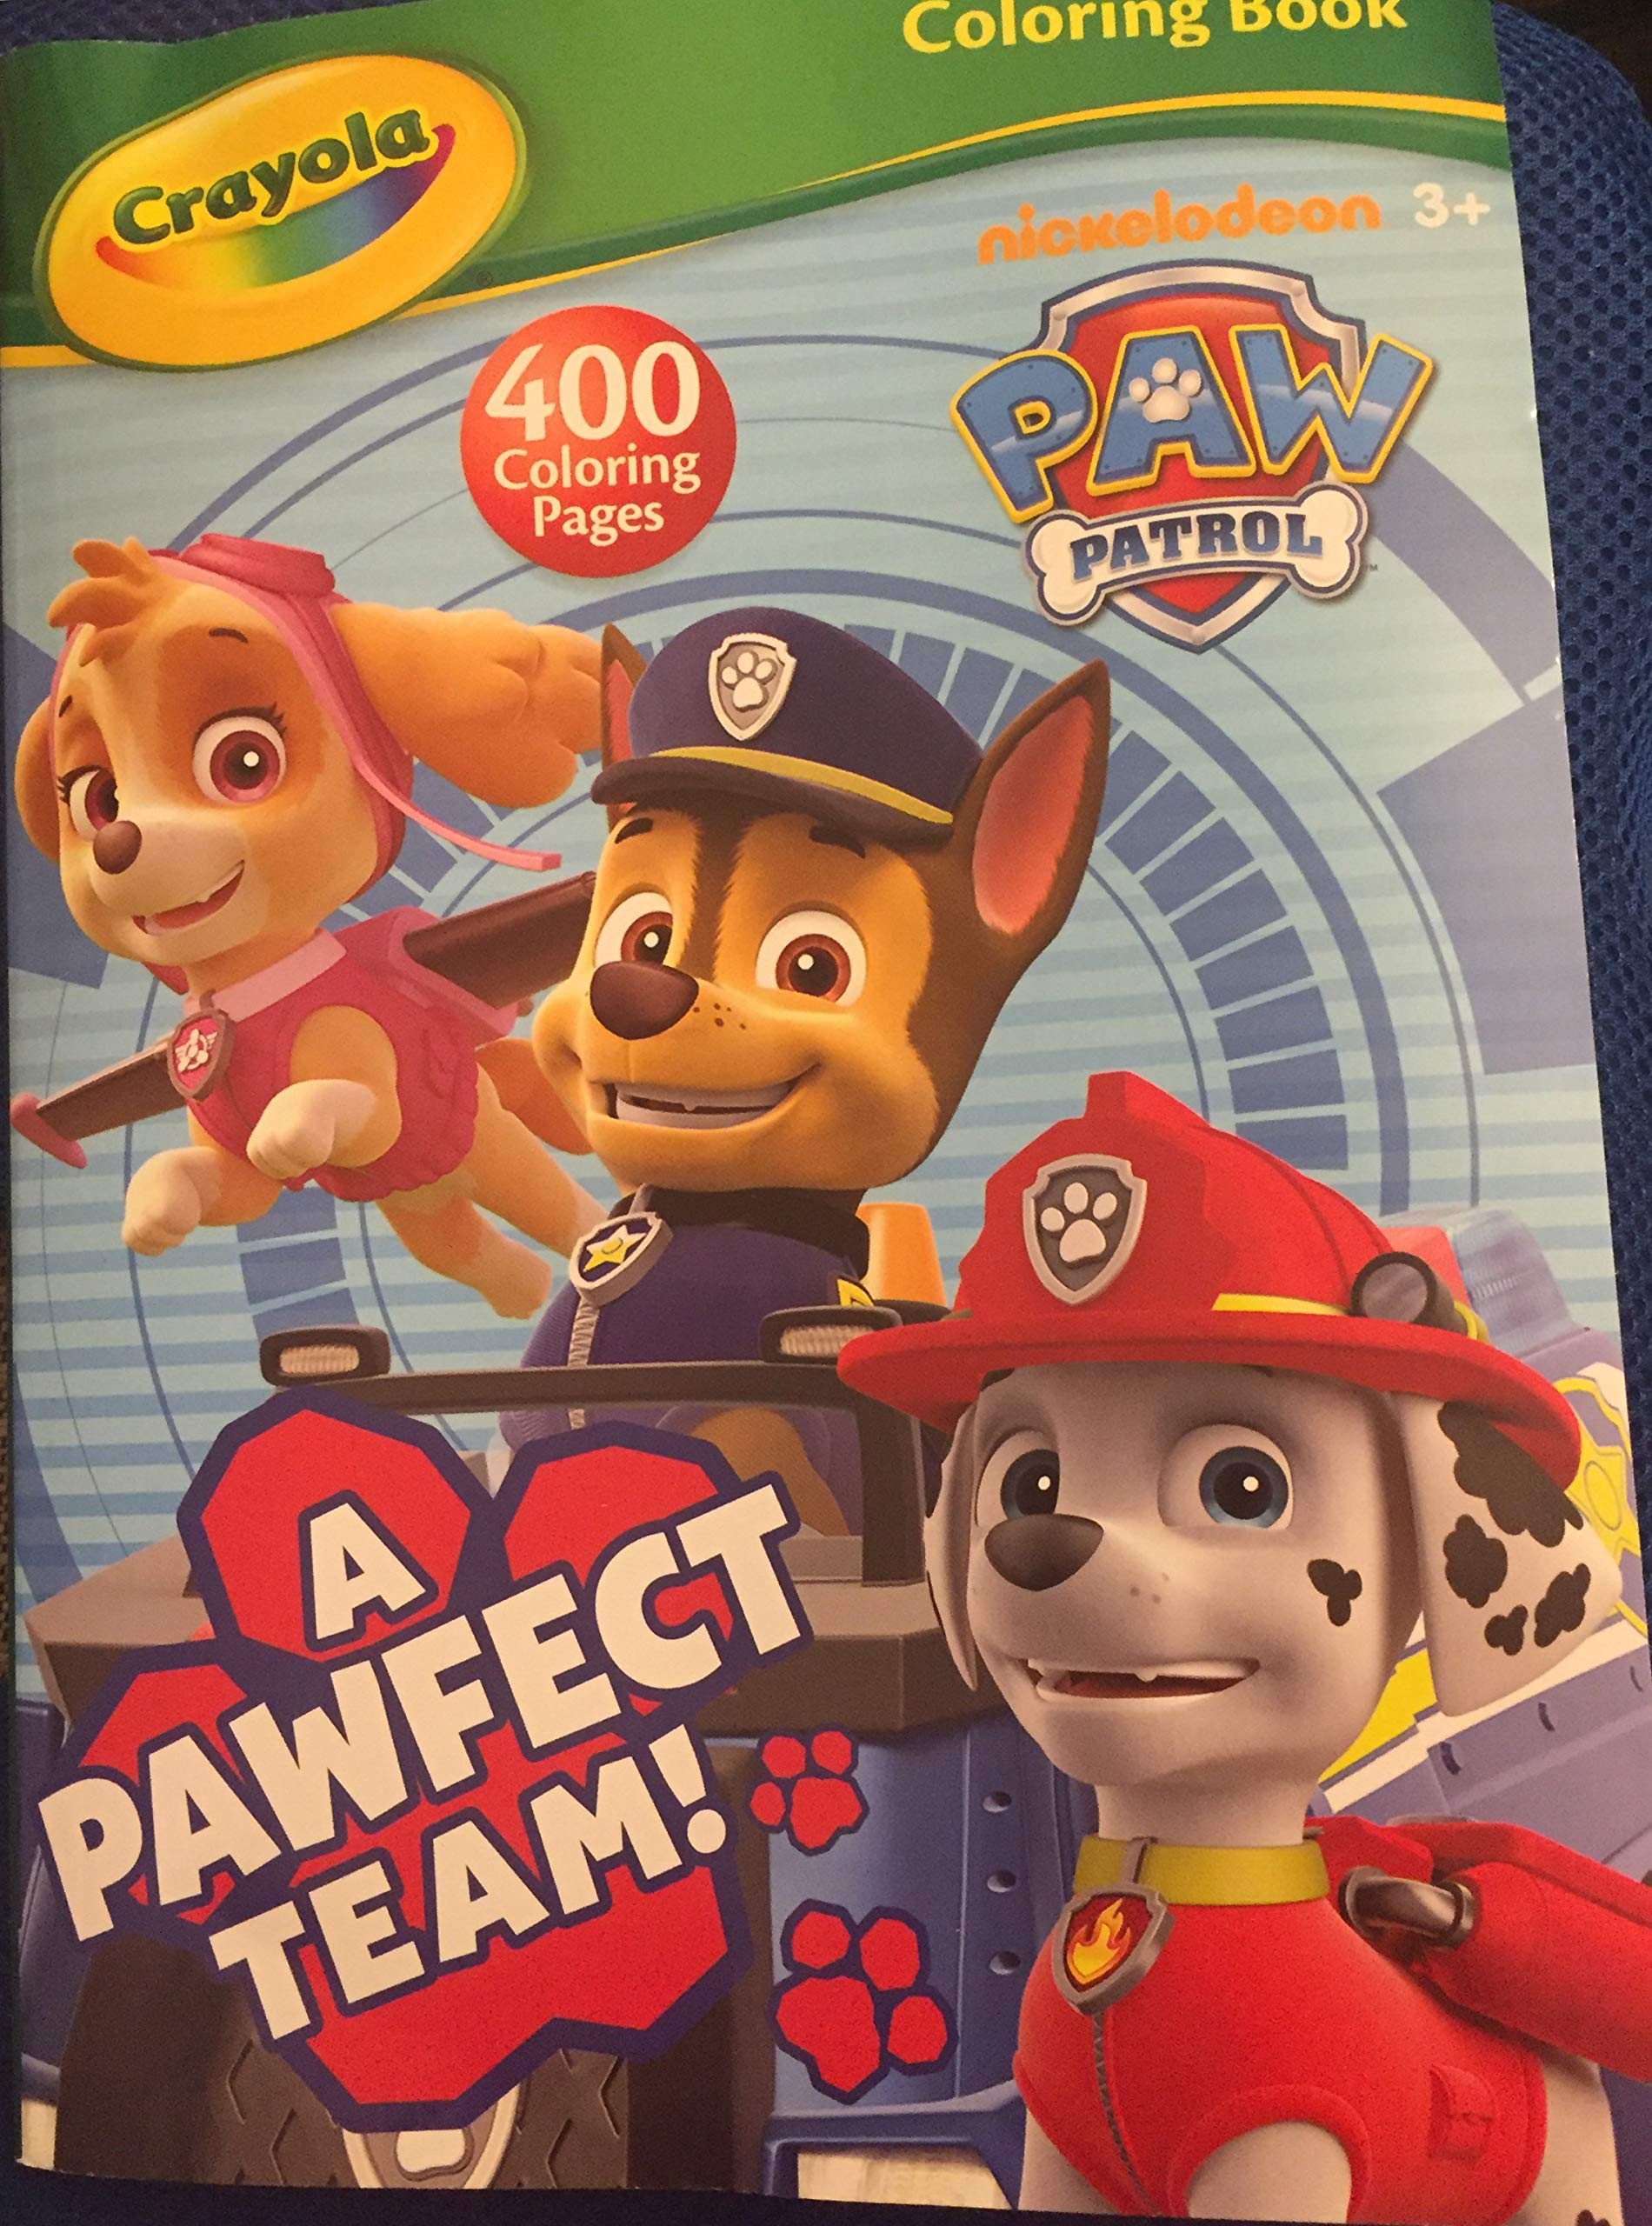 - Crayola Paw Patrol 400 Page Coloring & Activity Book - A Pawfect